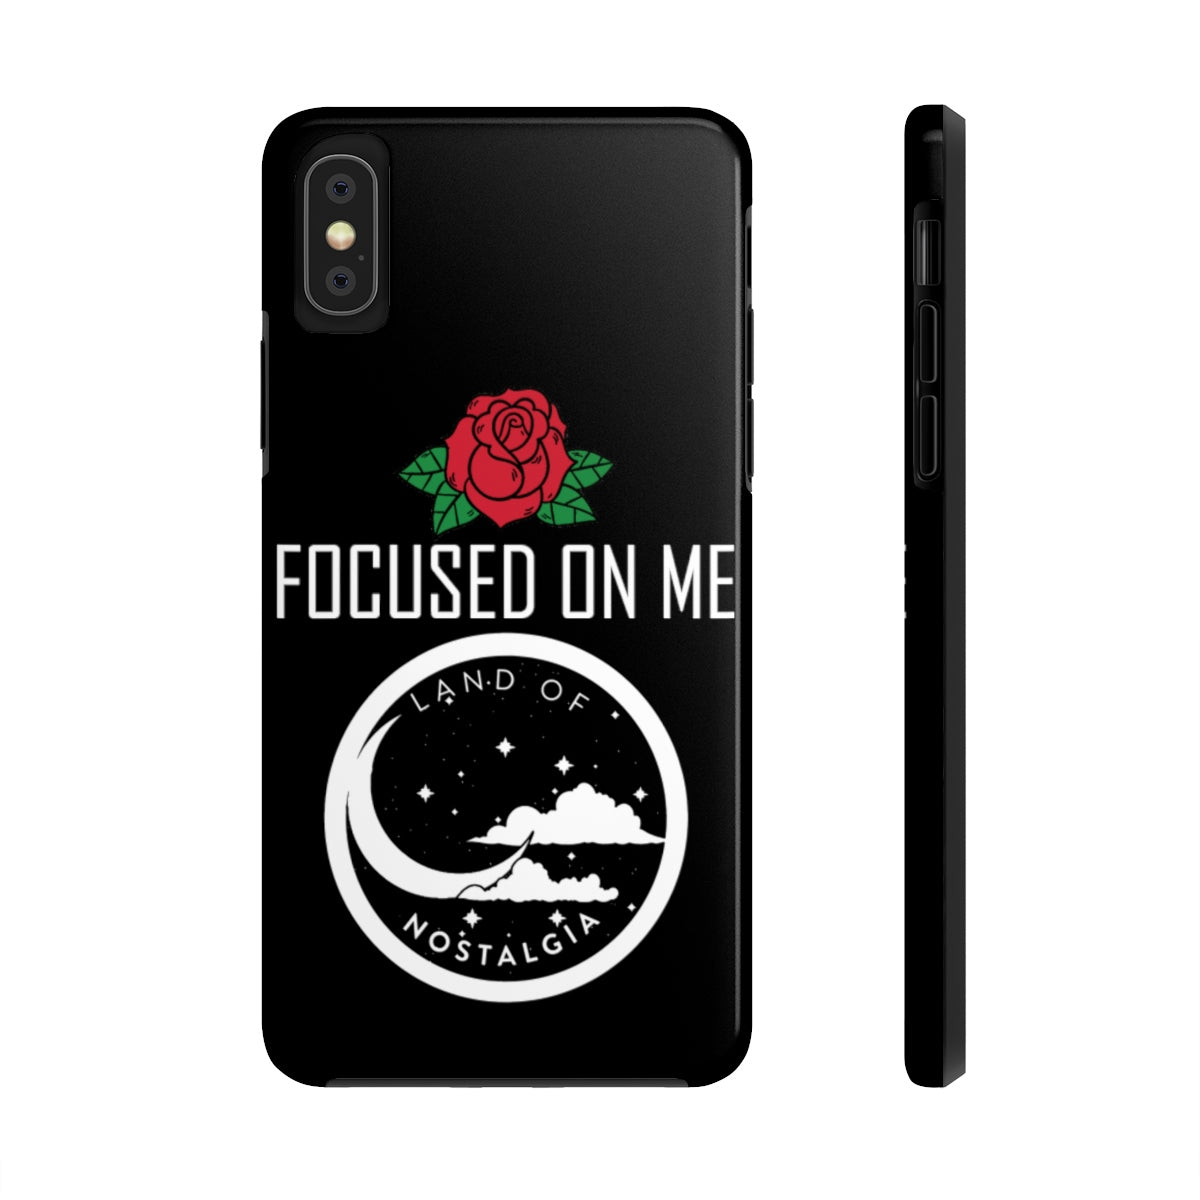 Land of Nostalgia Focus on Me Custom Case Mate Tough Phone Cases